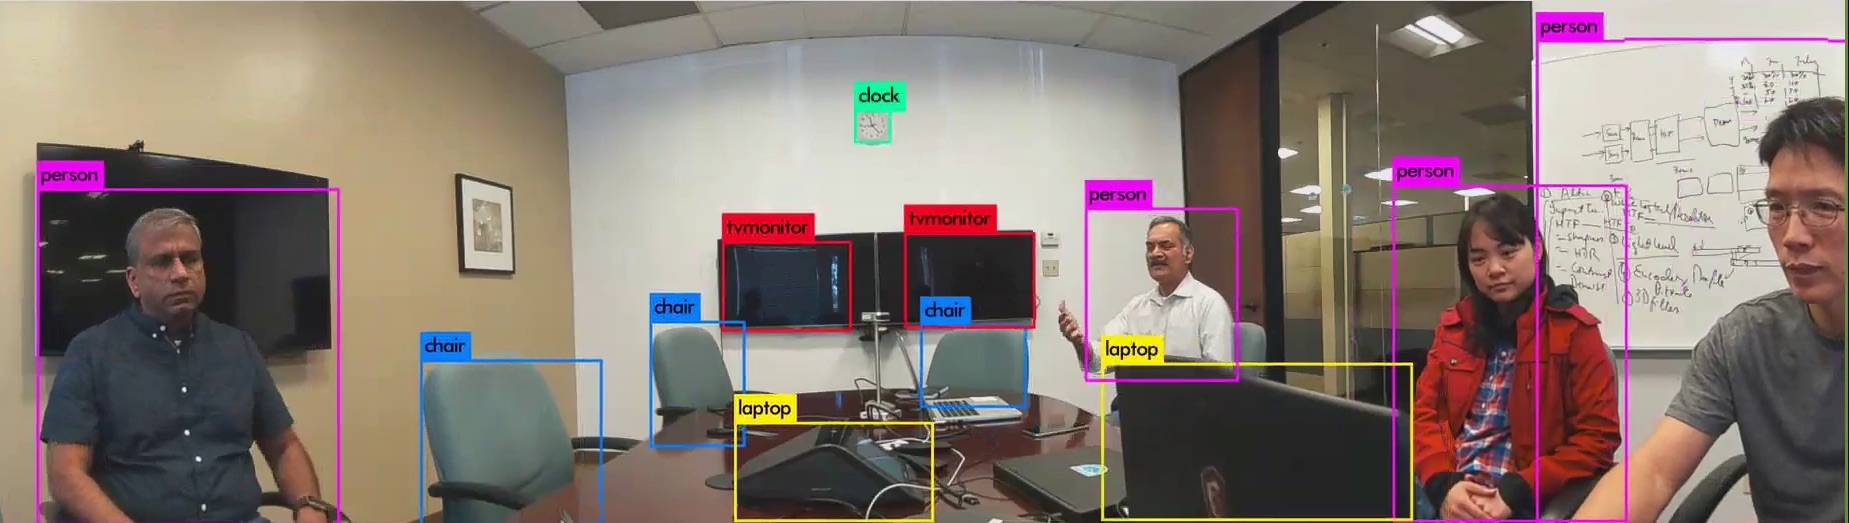 The Room Camera as Sensor.  The Future of AI in the Meeting Room